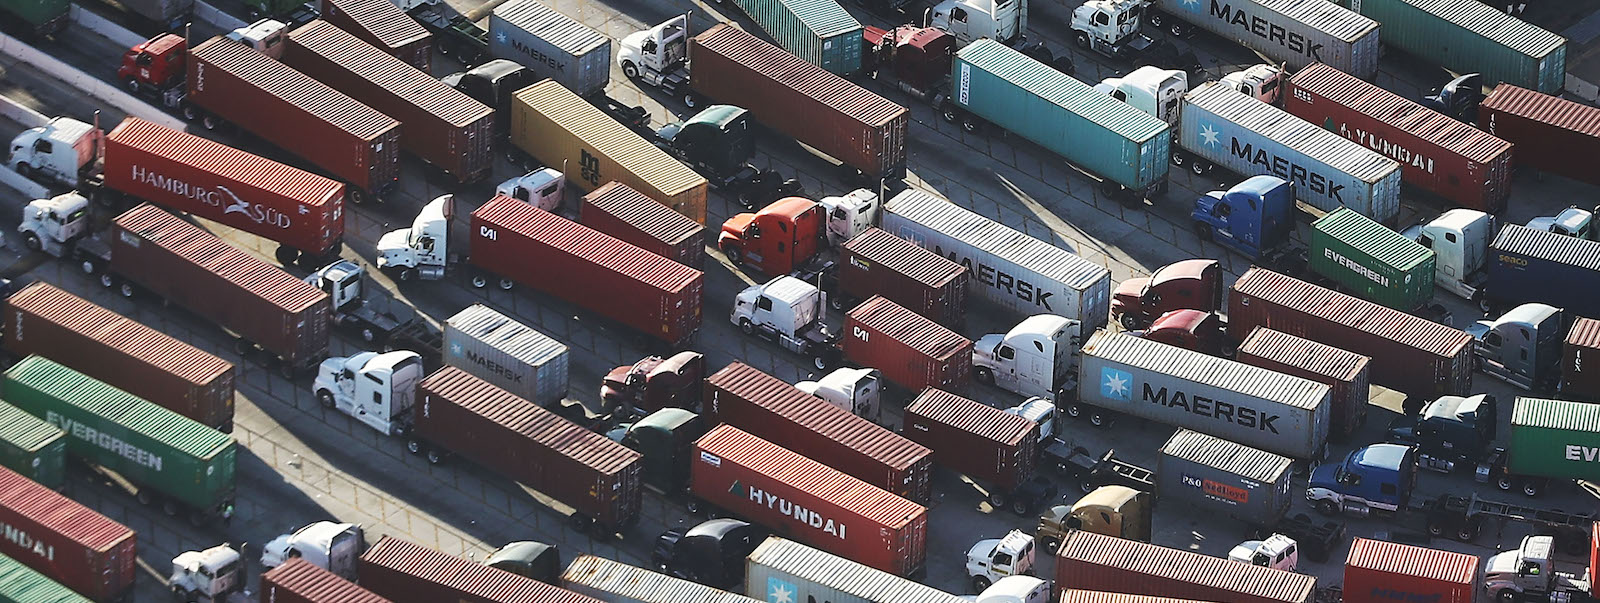 Trucks haul shipping containers at the Port of Los Angeles, California (Photo: Mario Tama via Getty)